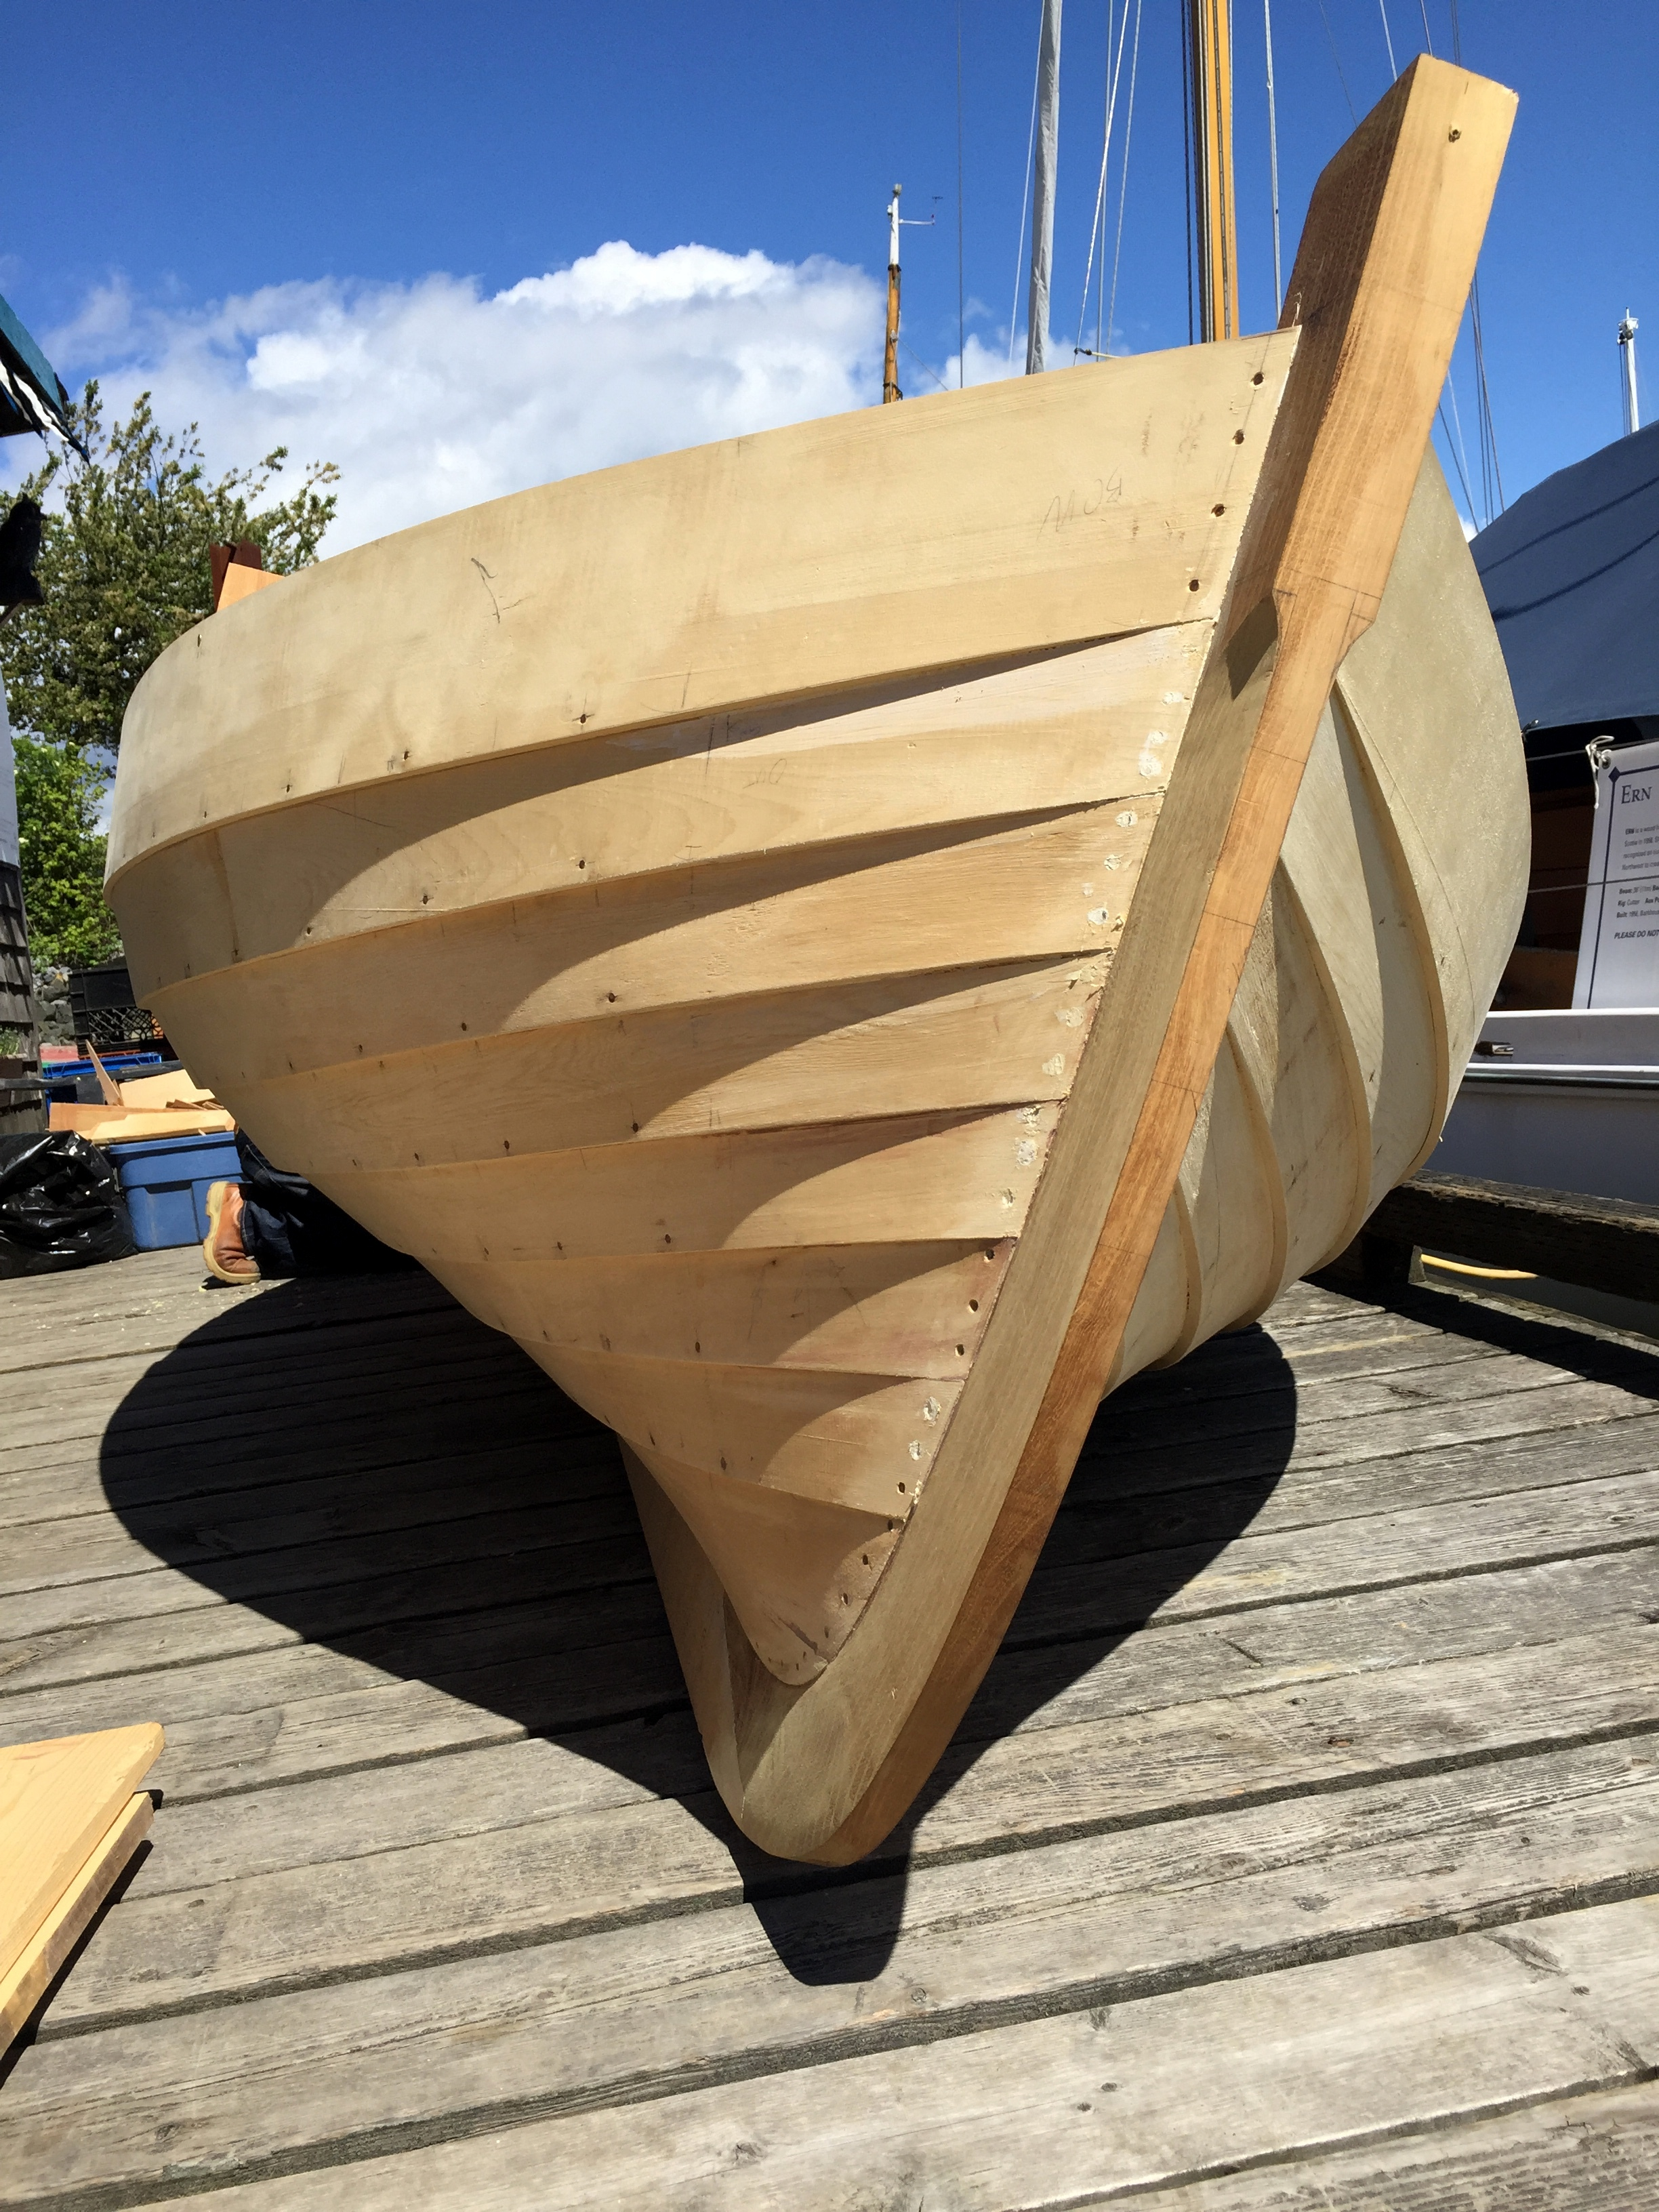 Oarlock And Sail Wooden Boat Club A Registered Society In The